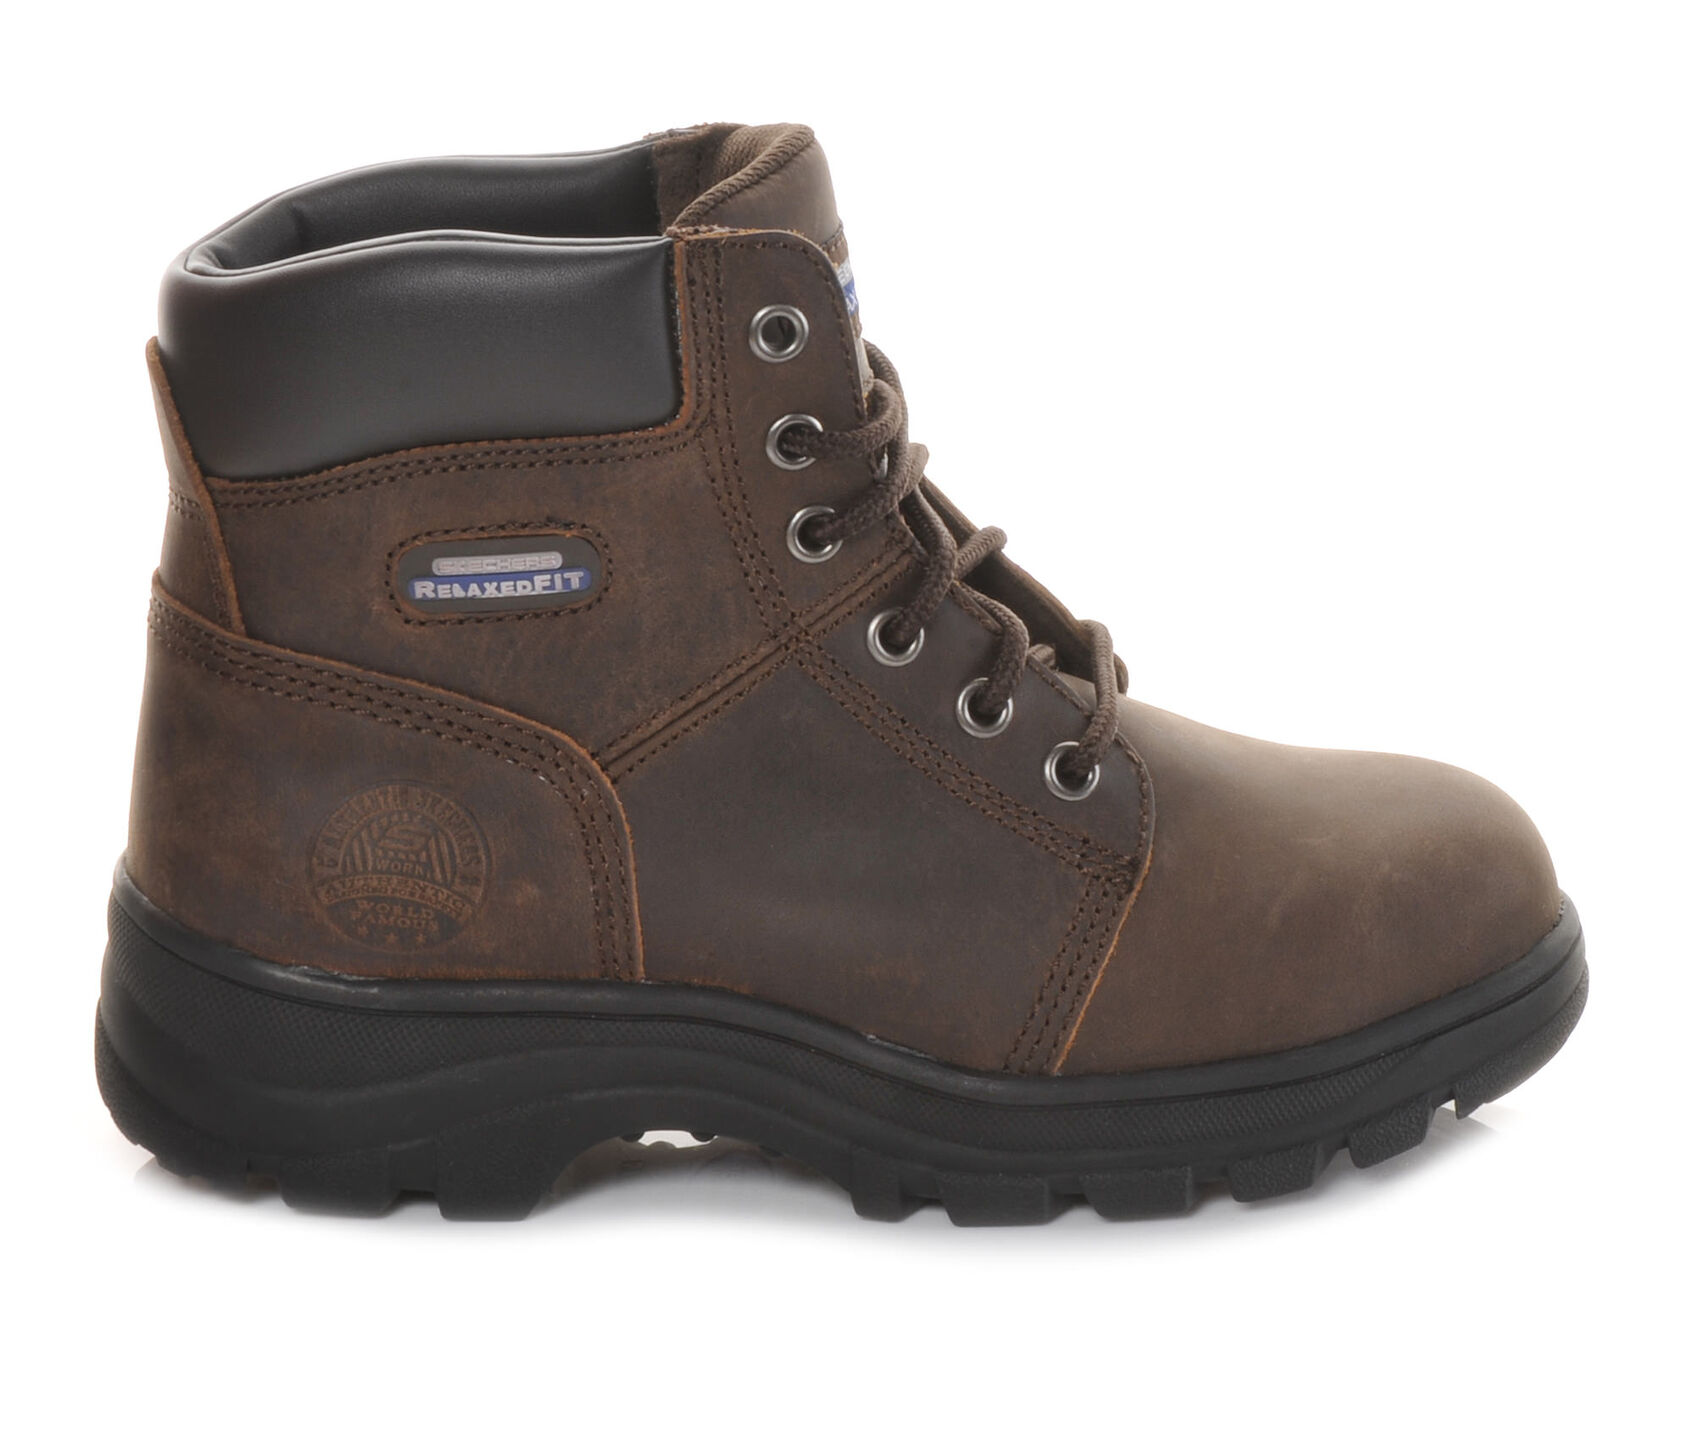 8e2bb3e18a6 ... Skechers Work Workshire Peril 76561 6 In Steel Toe Work Boots. Previous